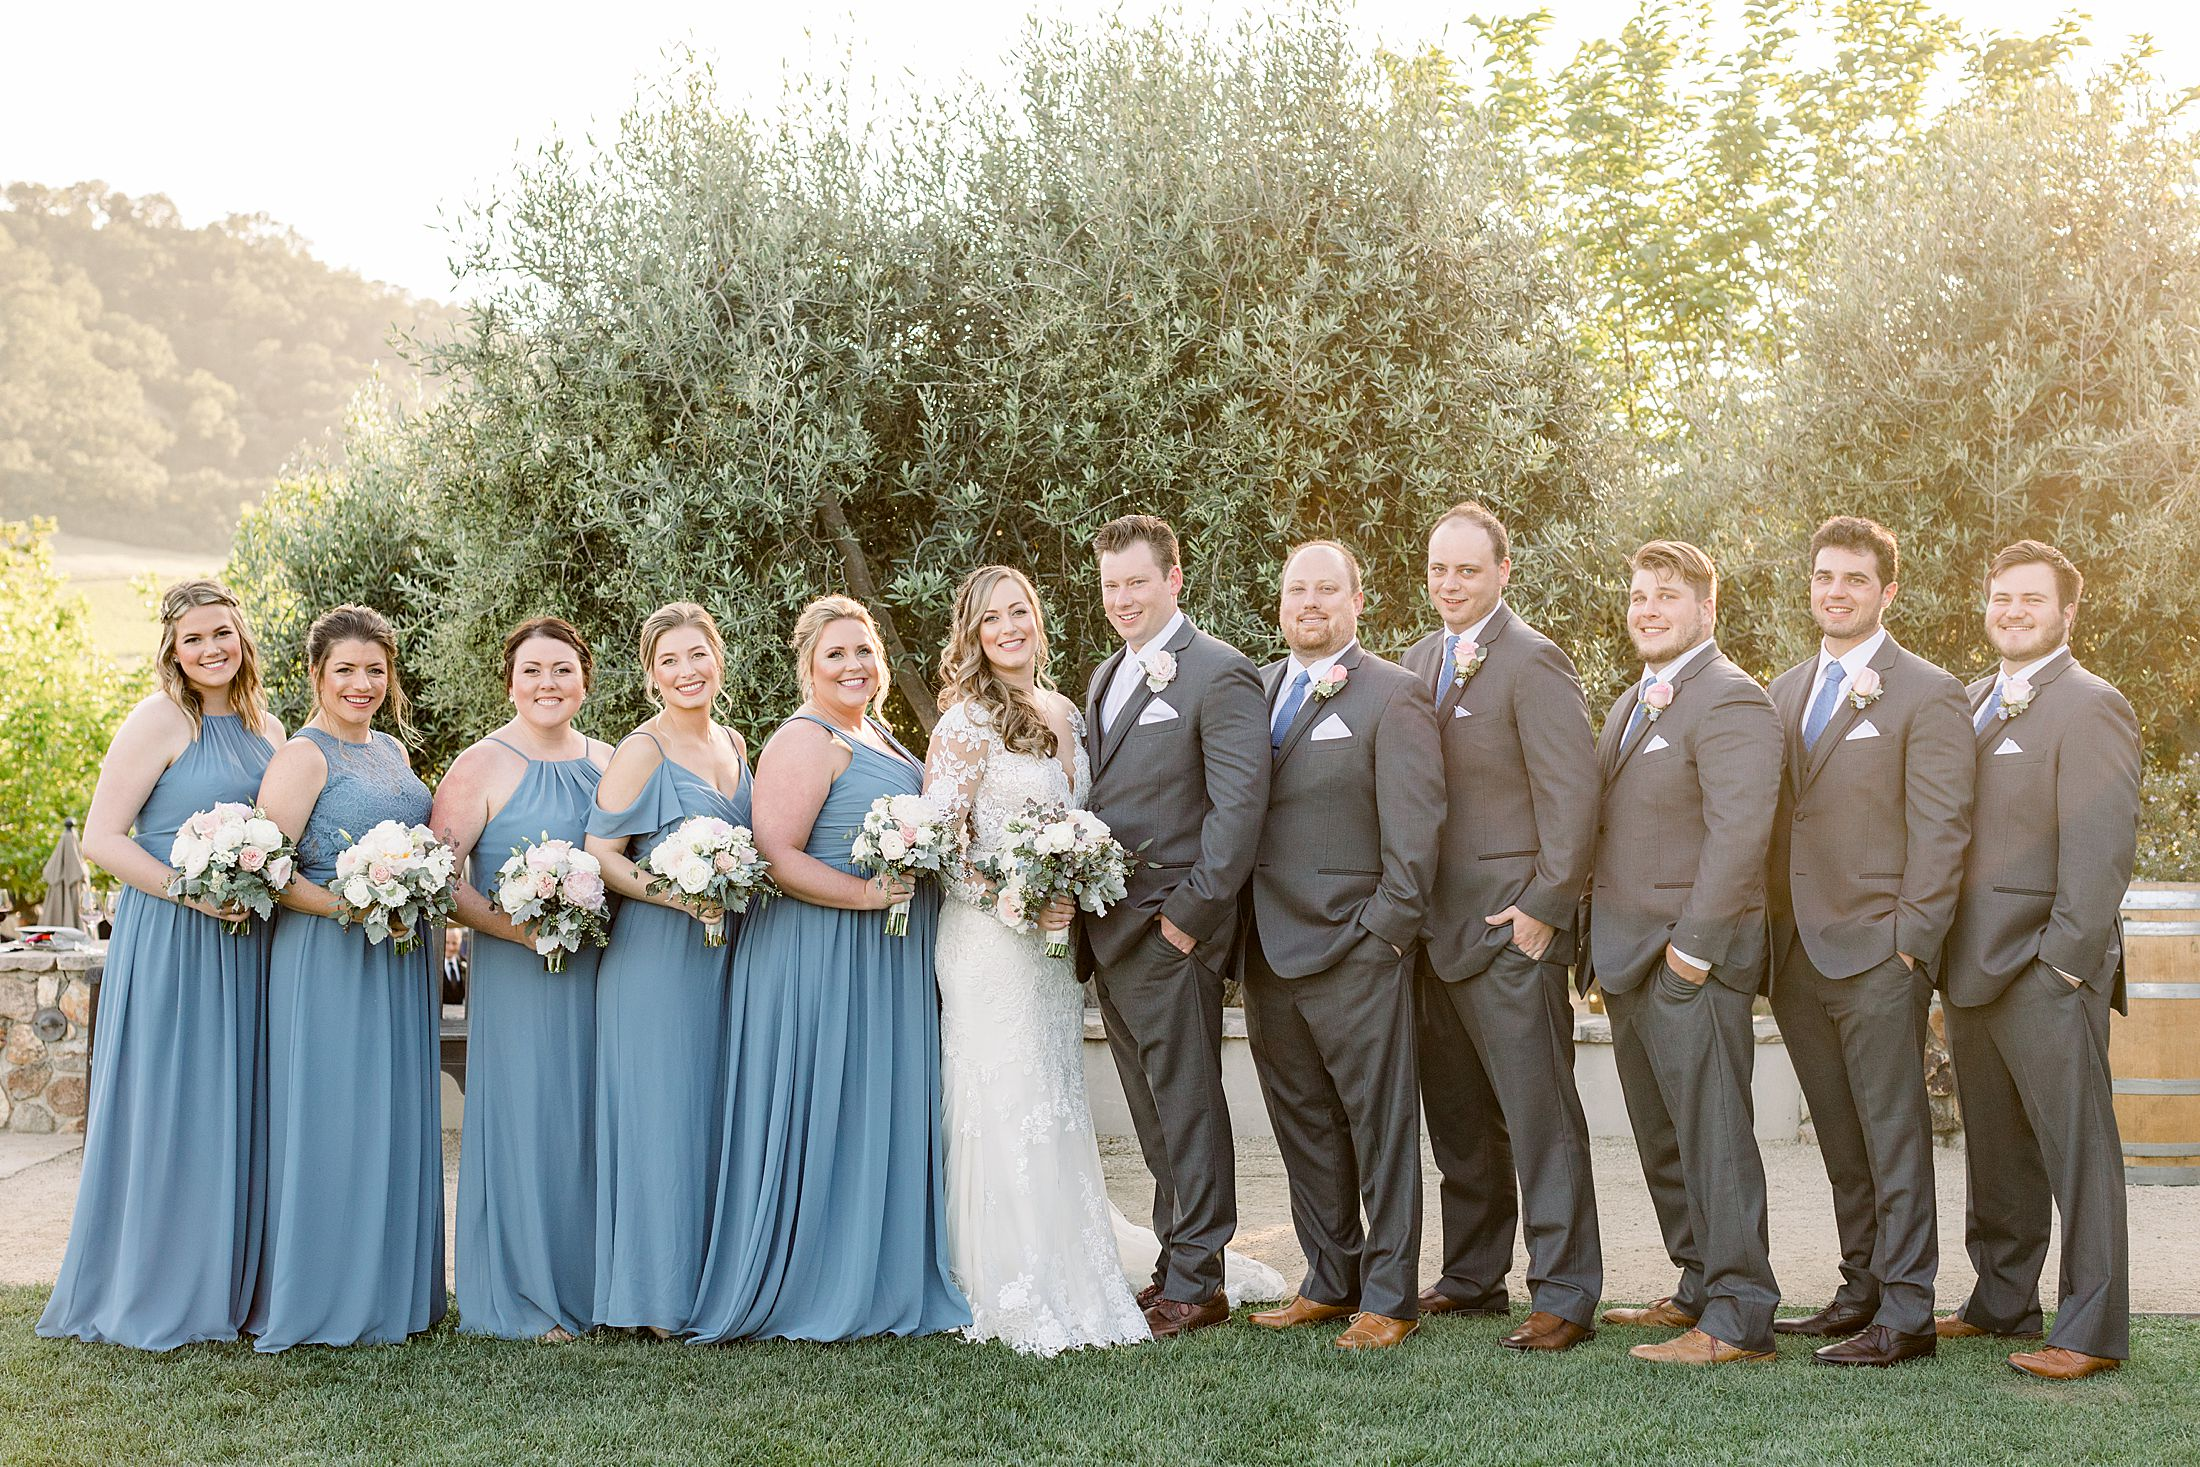 Clos LaChance Winery Wedding - Ashley Baumgartner - Kat & Kurt - Morgan Hill Wedding - Winery Wedding - Bay Area Photographer - Sacramento Wedding Photographer_0032.jpg